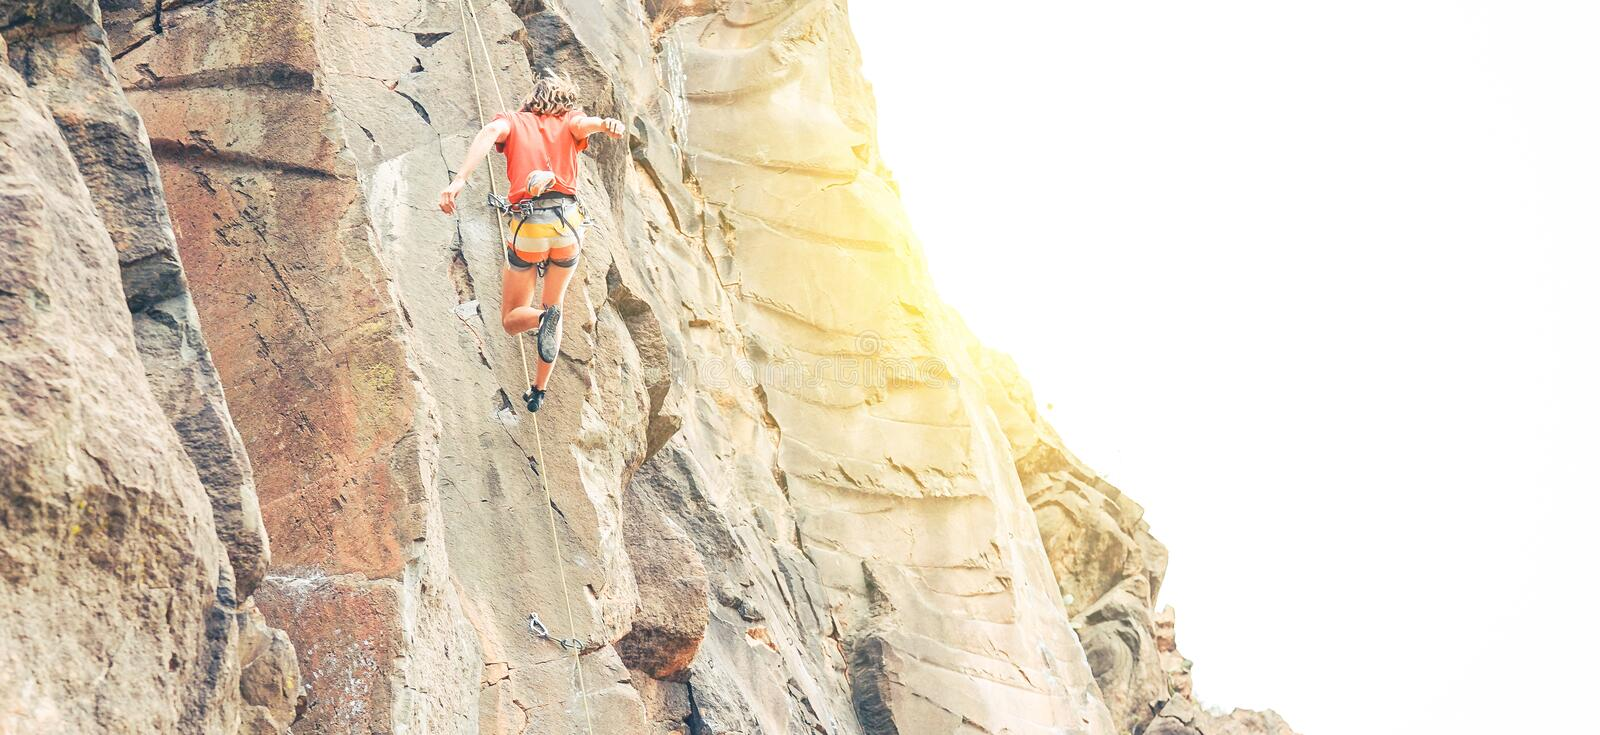 Athletic man clambing a rock wall at sunset - Climber performing on a canyon mountain making an acrobatic jump royalty free stock photo